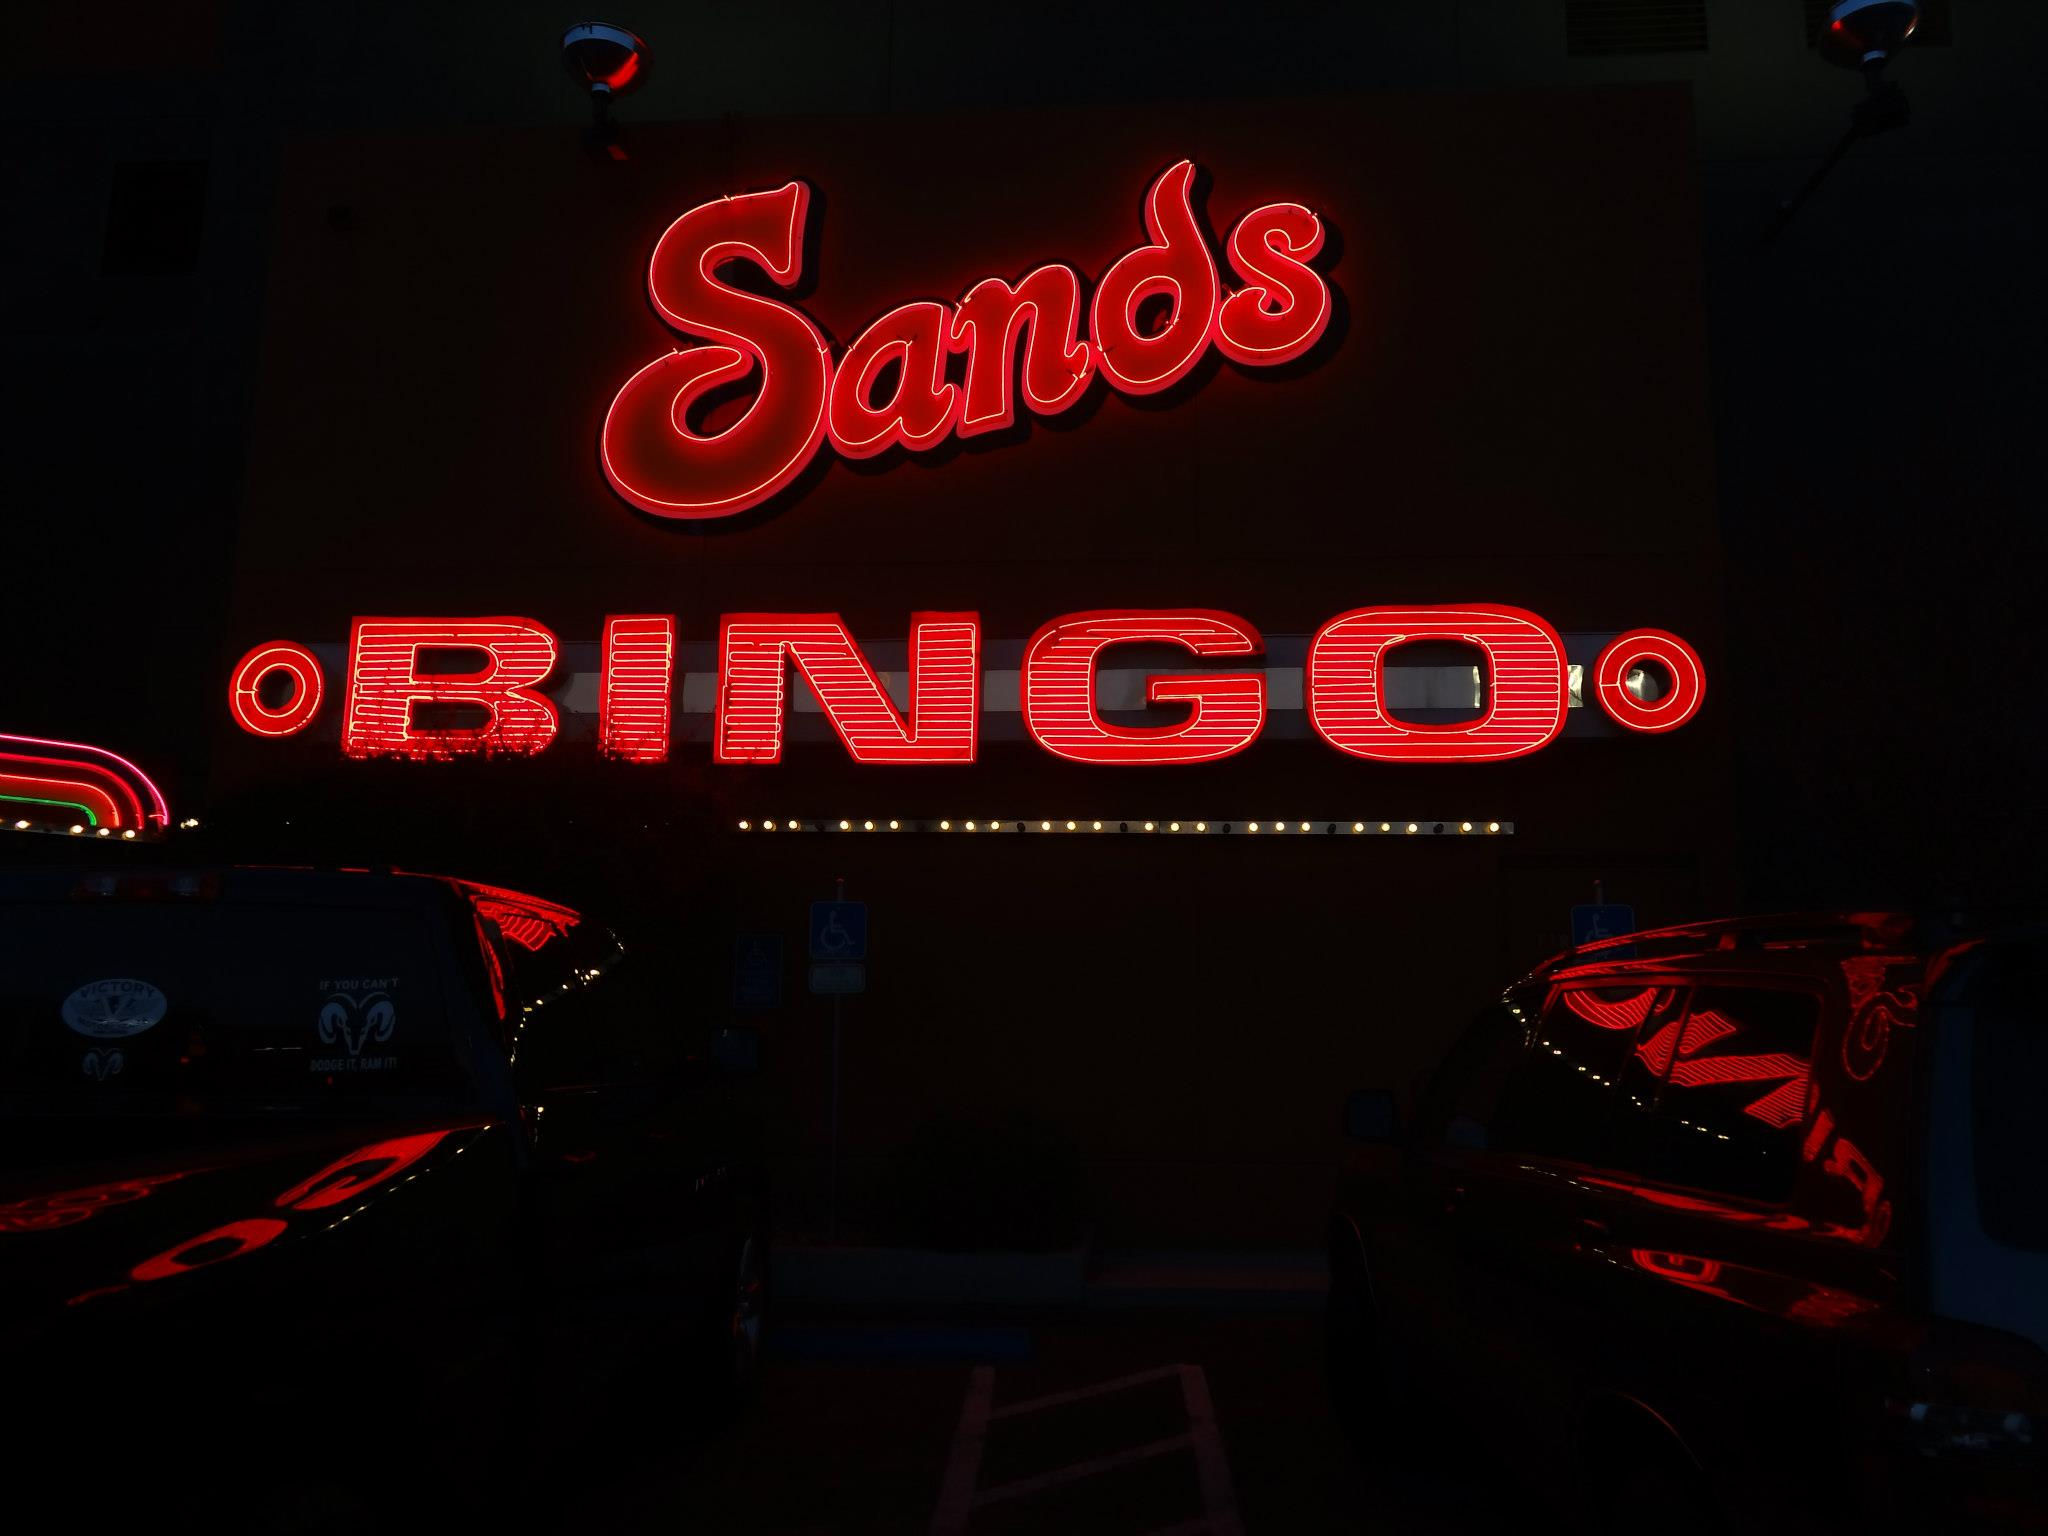 Sands casino neon sign